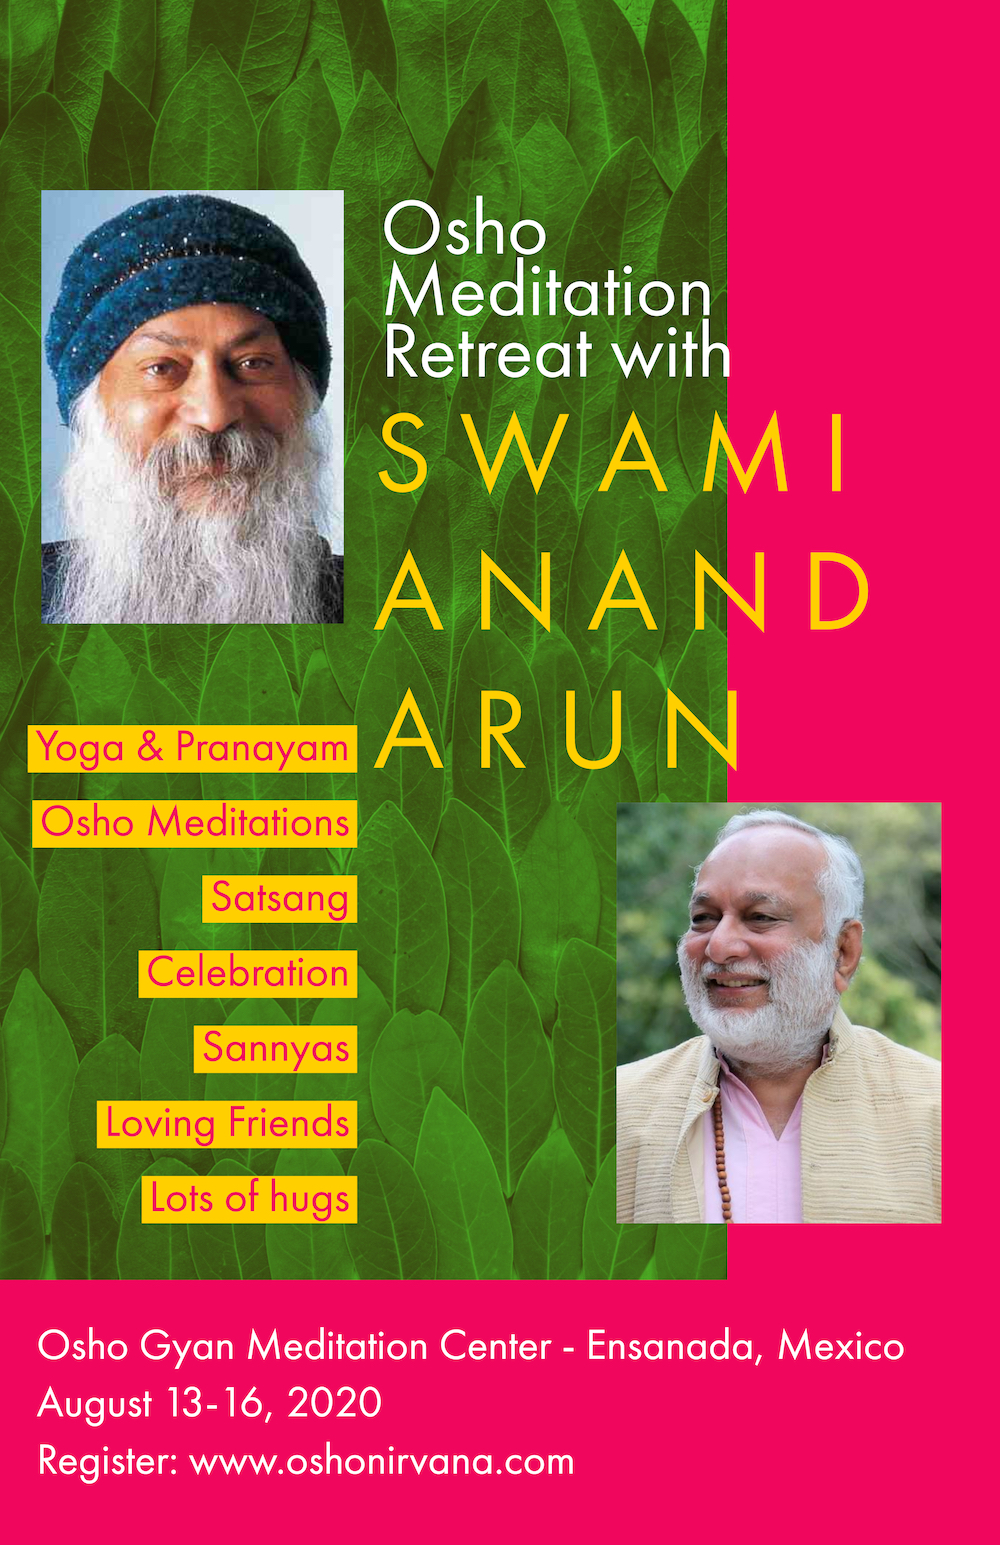 Osho Meditation Retreat with Swami Anand Arun in Ensanada @ Osho Gyan Institute